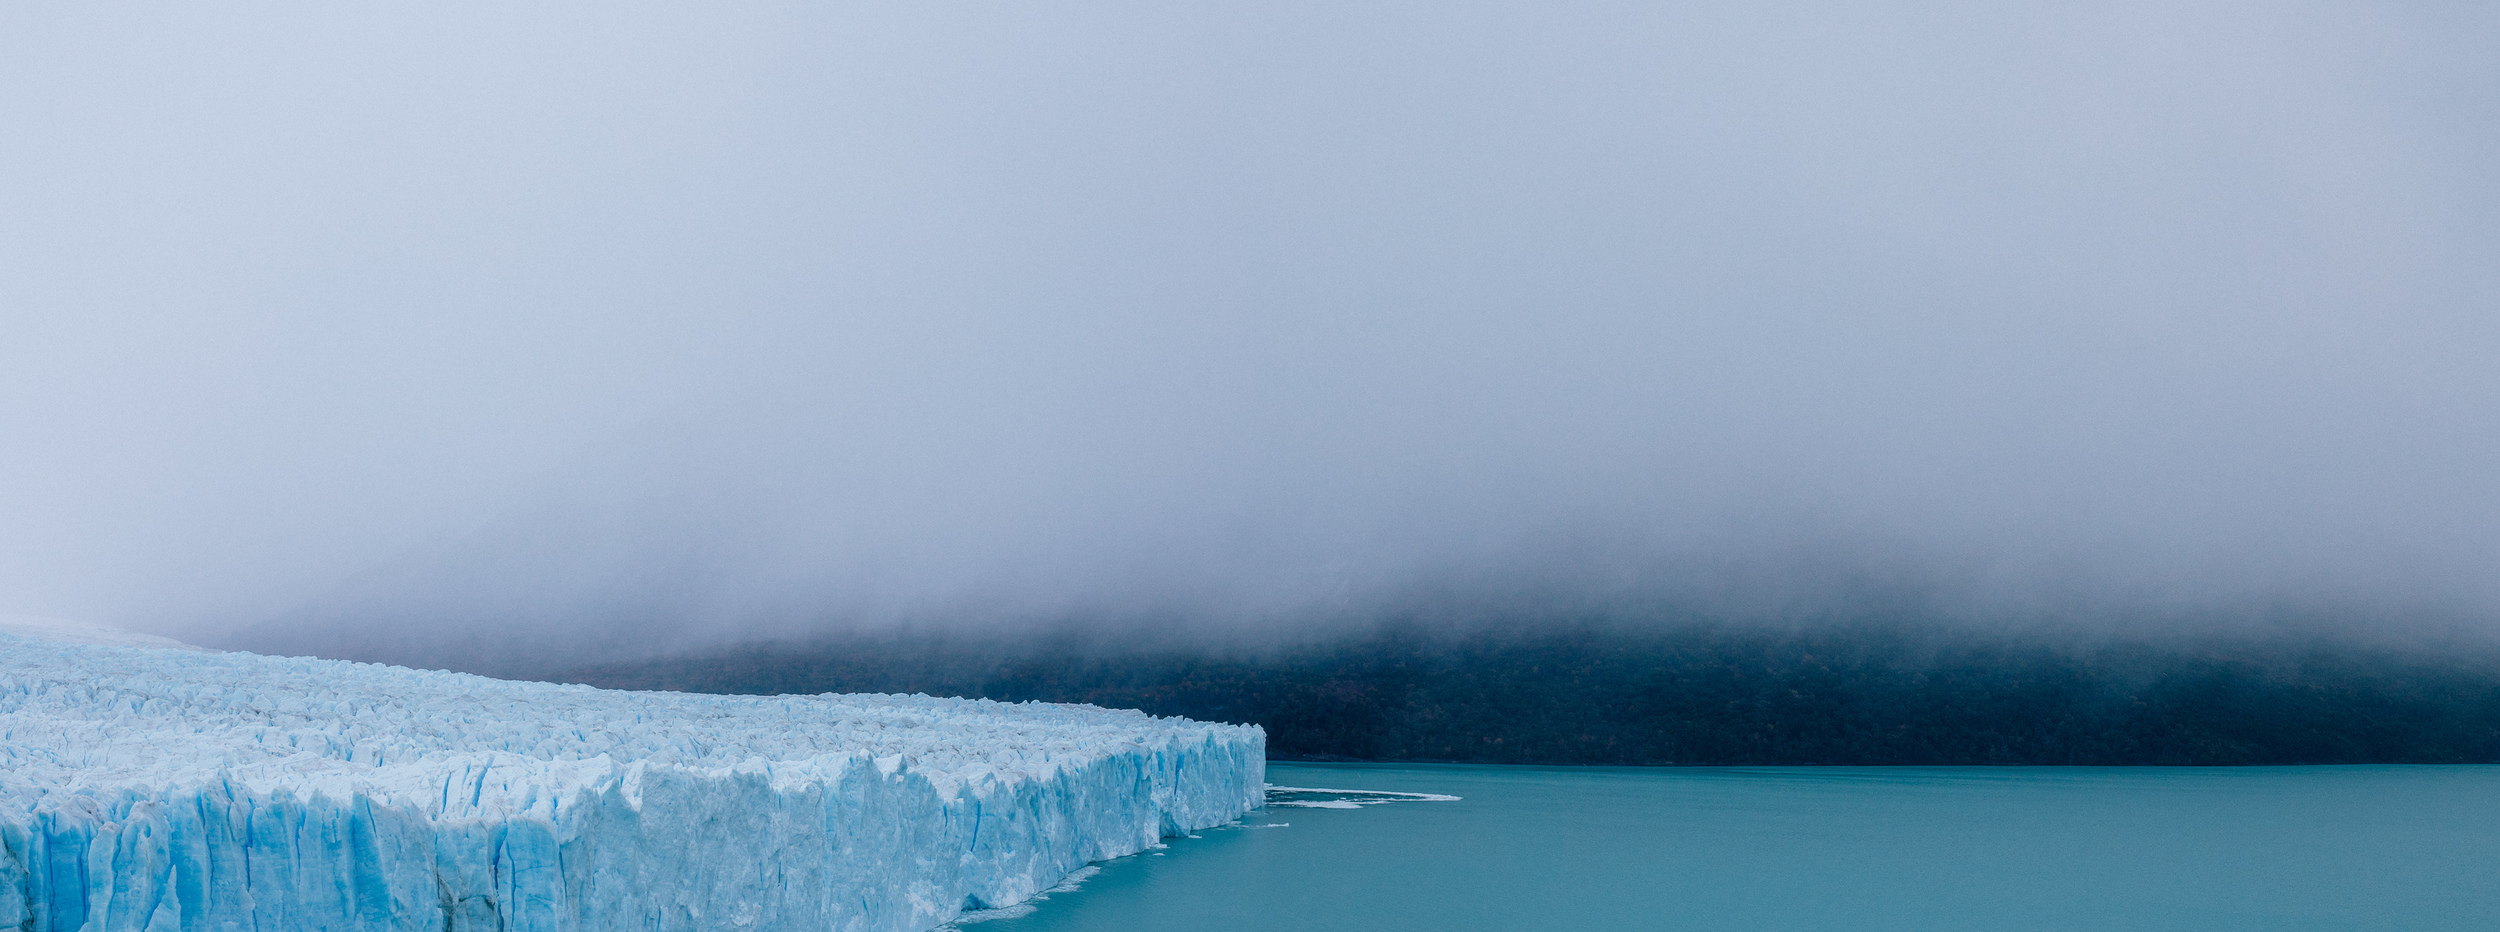 The northern side of the tip of Perito Moreno.